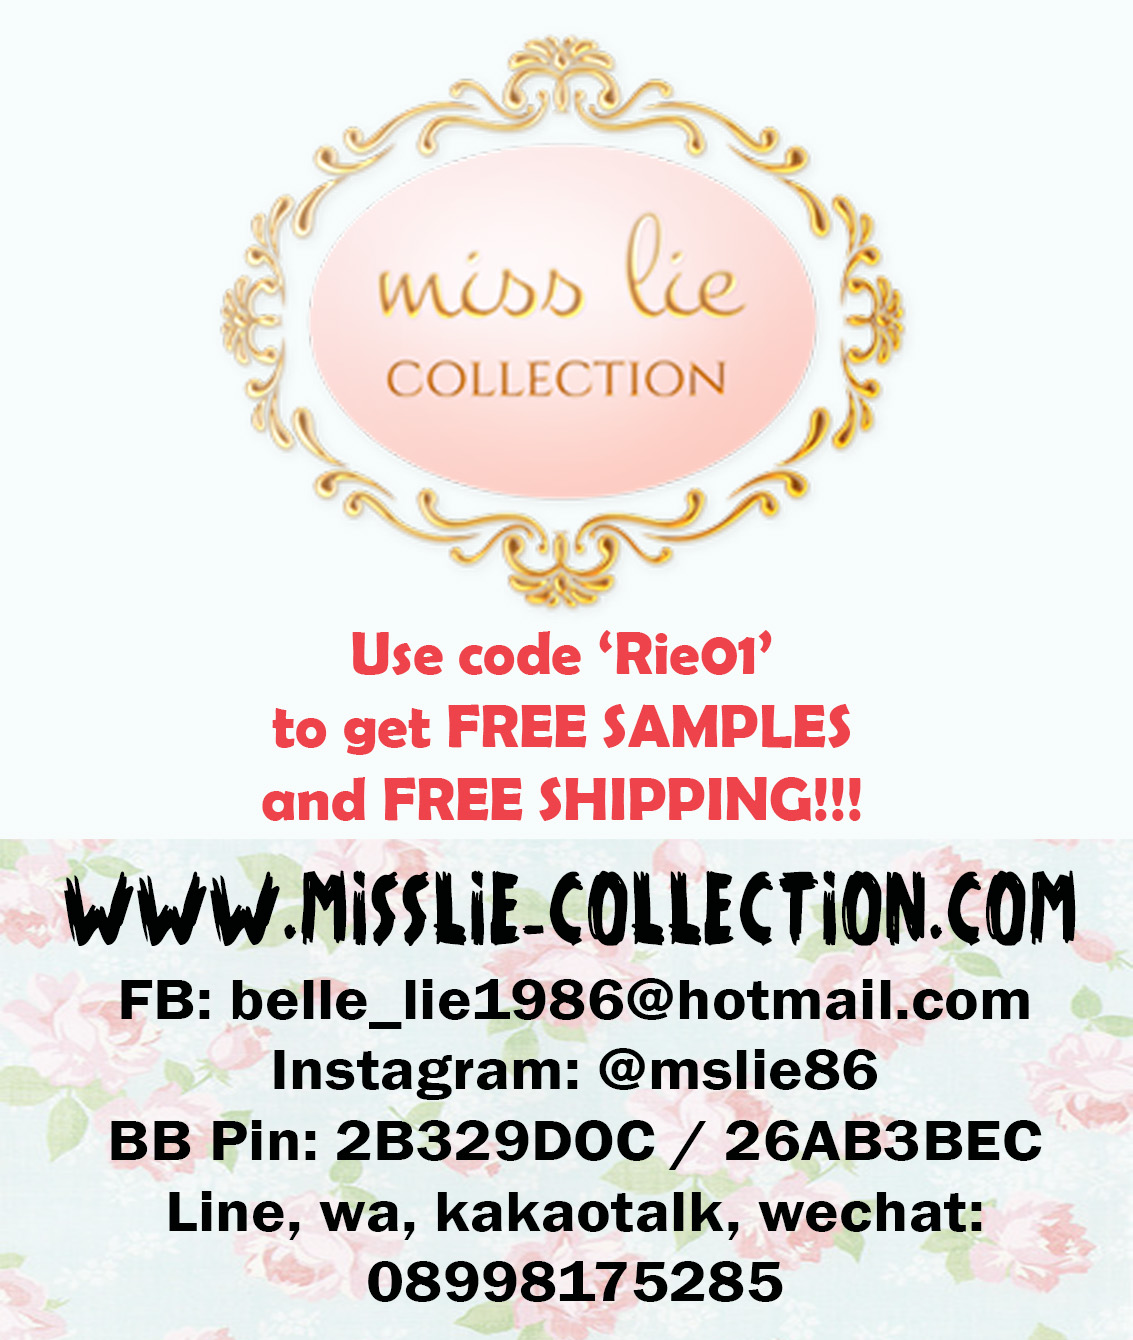 misslie-collection